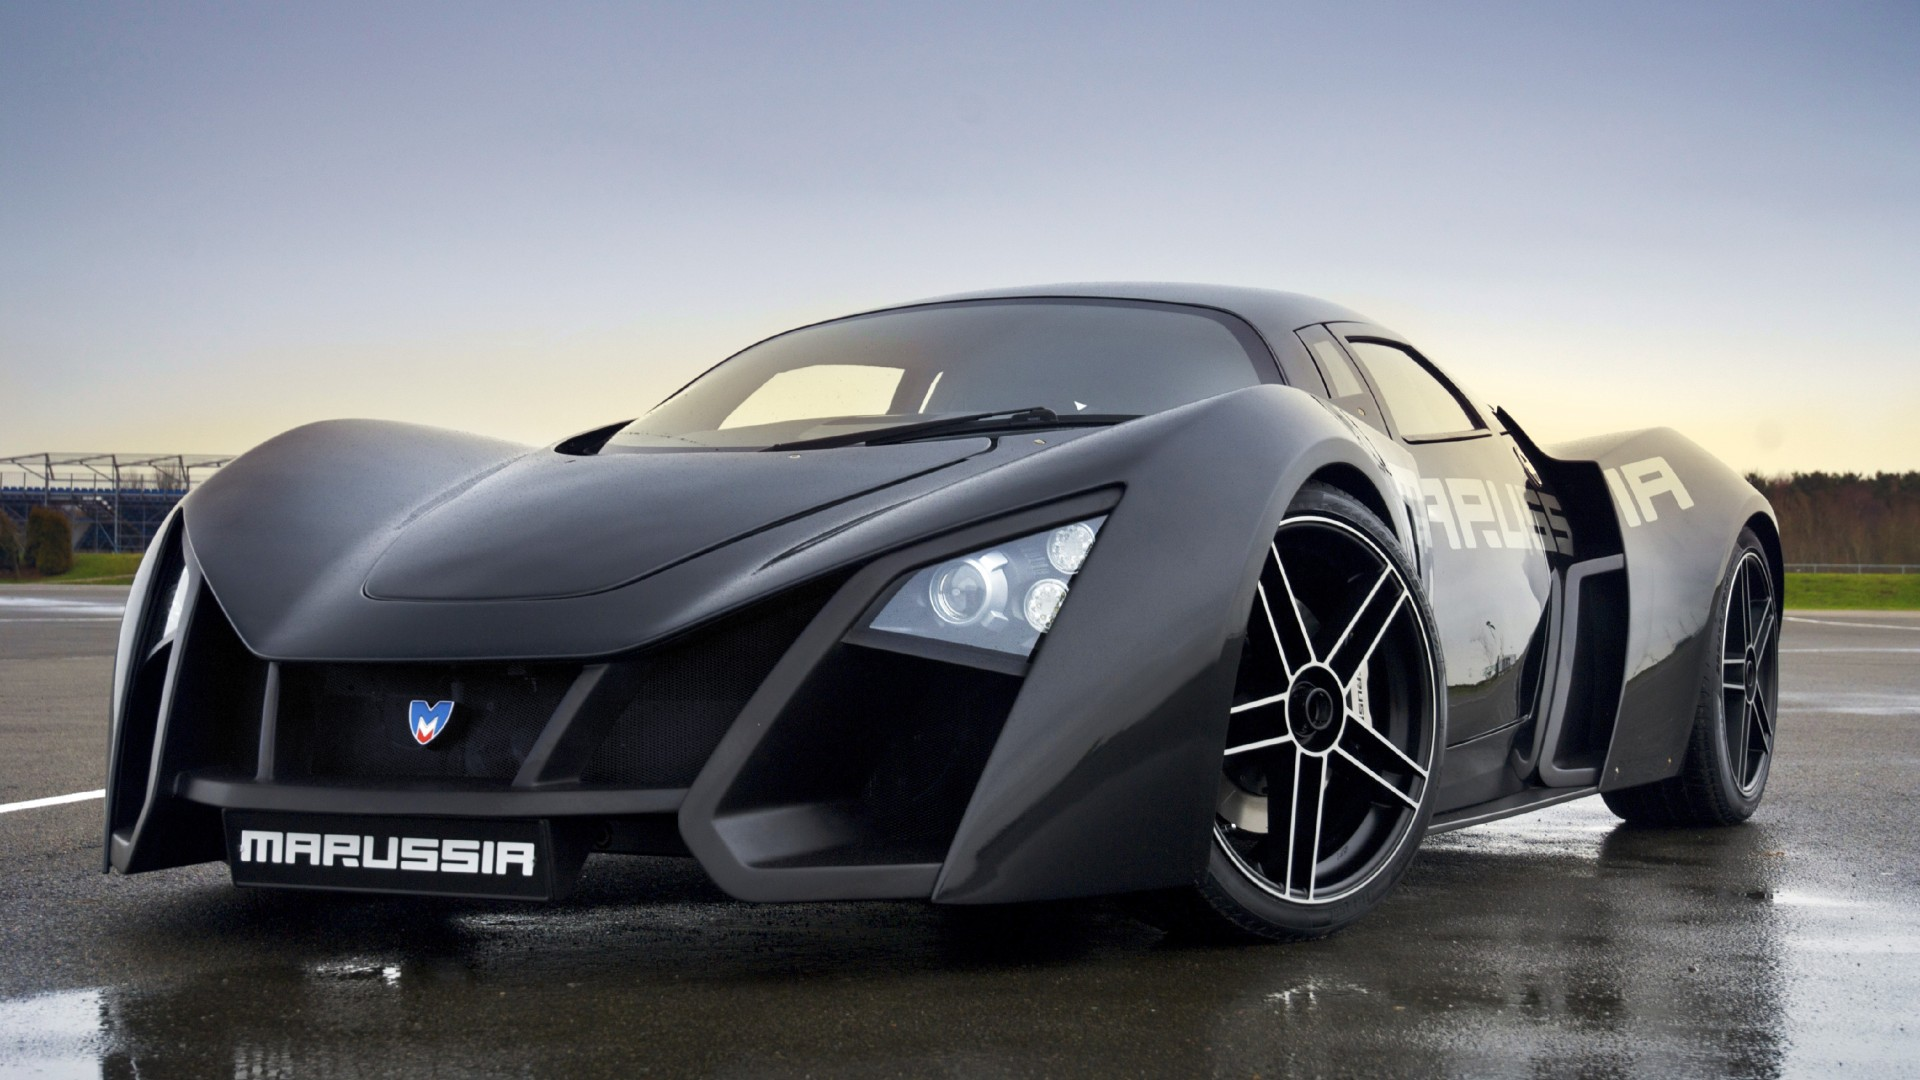 Wallpaper Marussia Supercar Sports Car Luxury Cars Russian - Sports cars and bikes